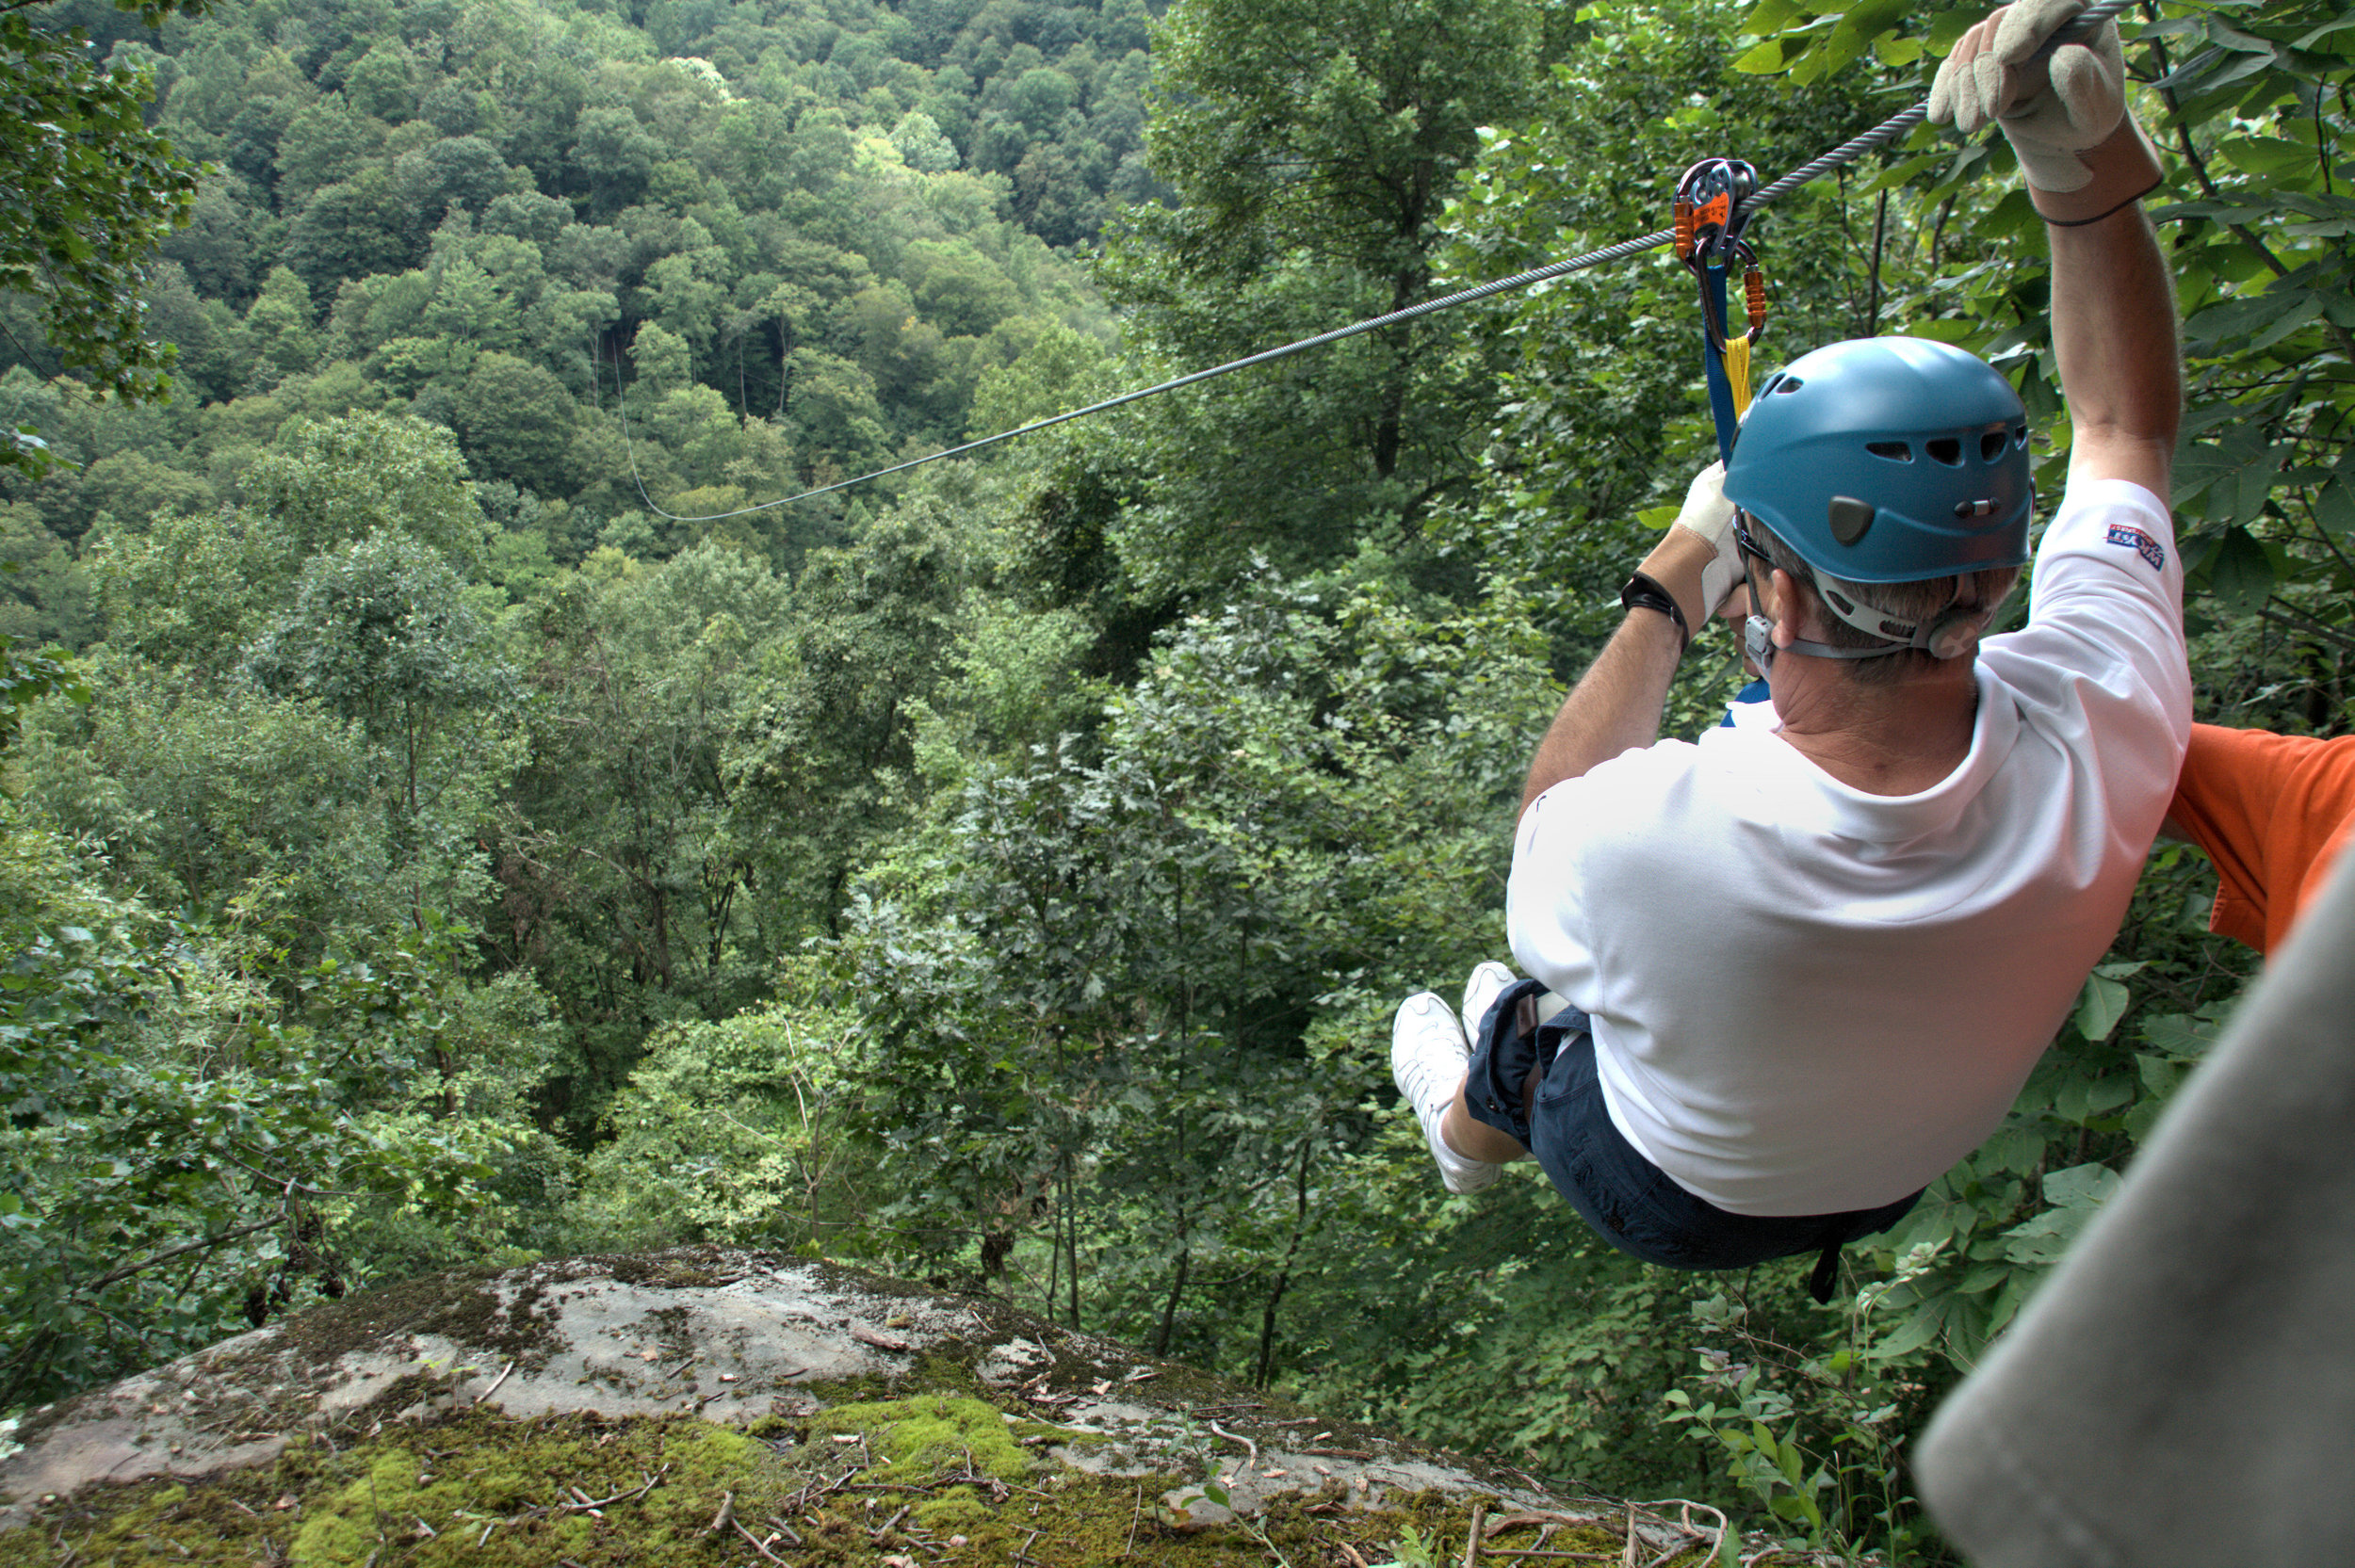 Black Mountain Thunder Zipline - Experience breathtaking views of the majestic Appalachian mountains on our 2-hour canopy tour.